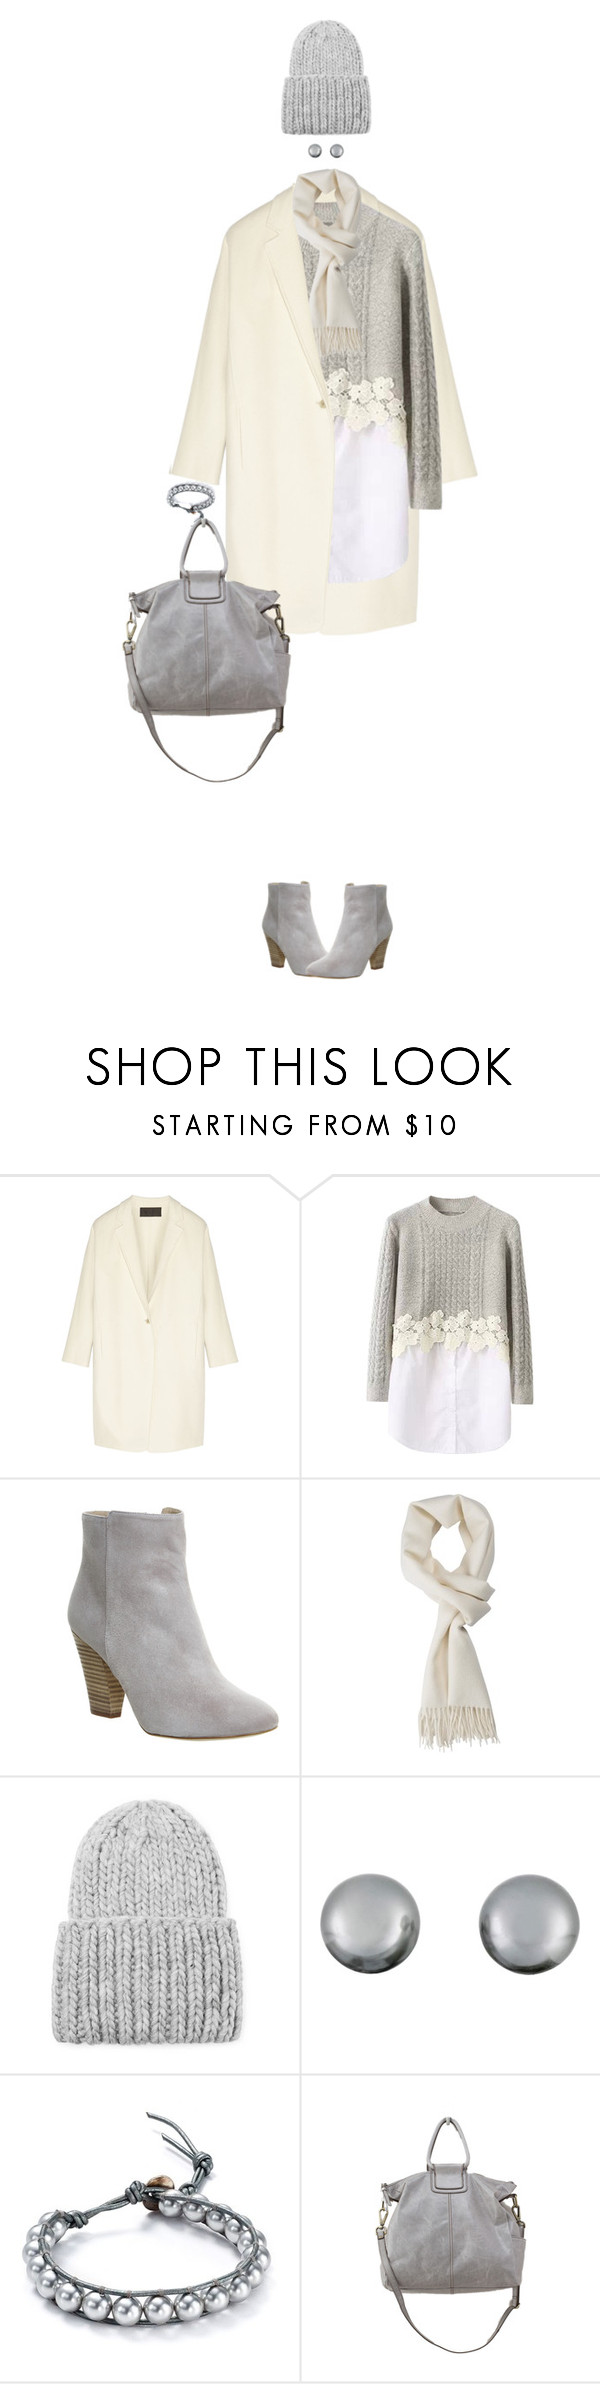 """""""Sweater Dress"""" by ittie-kittie ❤ liked on Polyvore featuring Donna Karan, Office, Forever 21, Kenneth Jay Lane, Chan Luu, HOBO, Fall, dress, sweaterdress and fallfashion"""